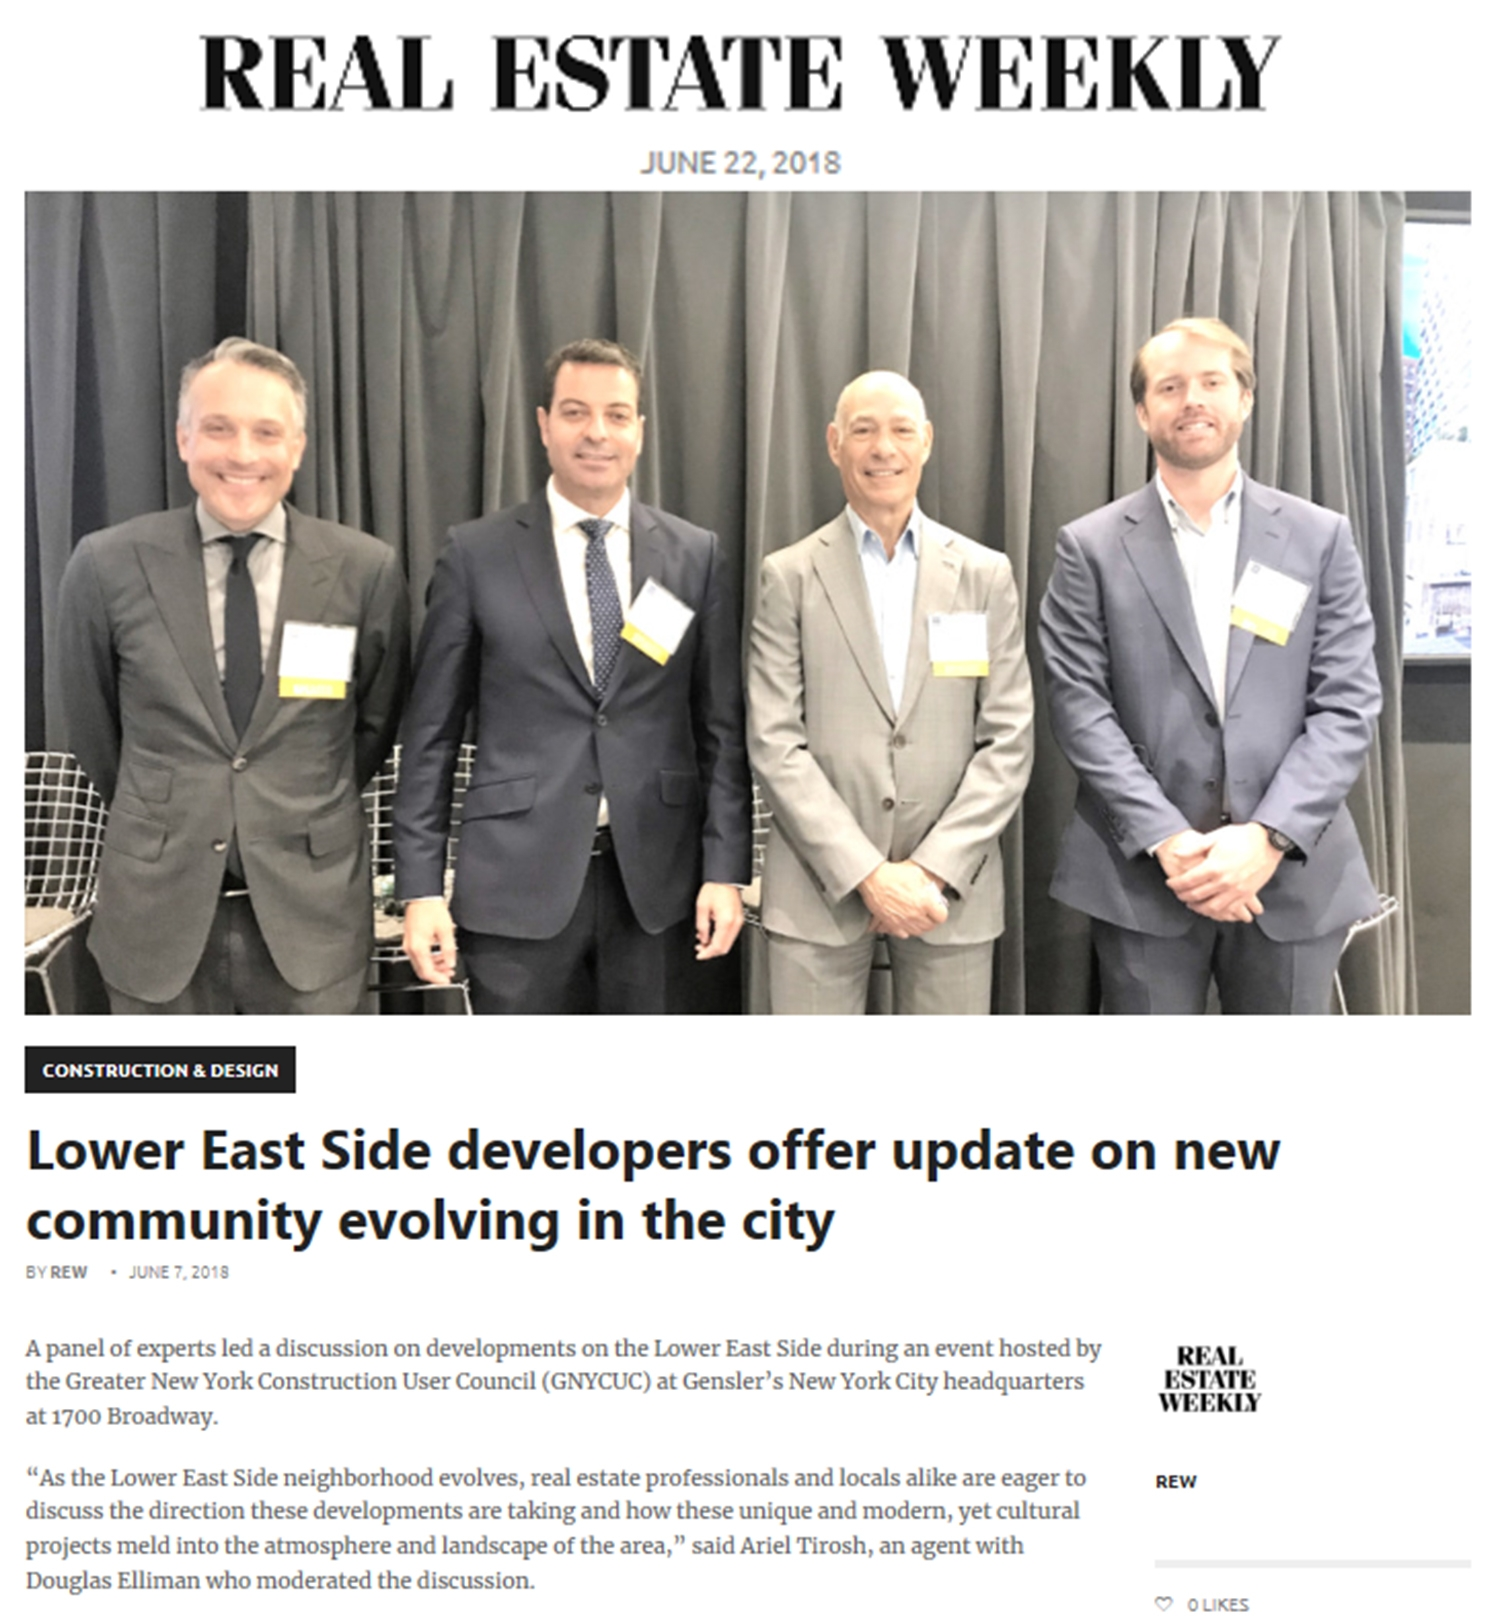 Lower East Side developers offer update on new community evolving in the city